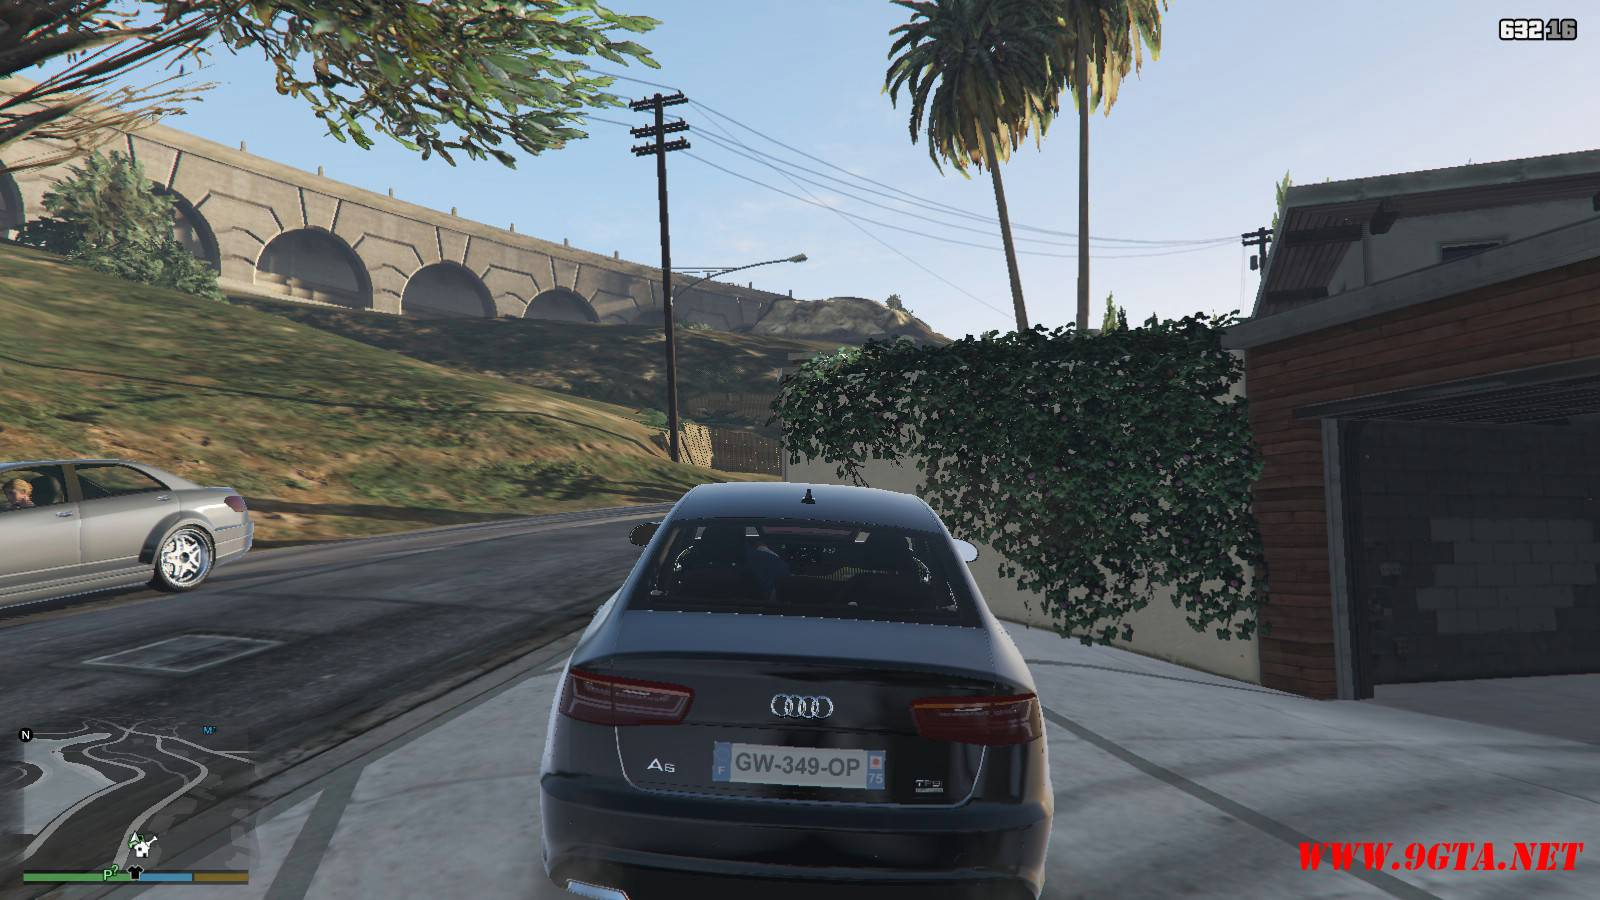 Audi A6 Mod For GTA5 (6)